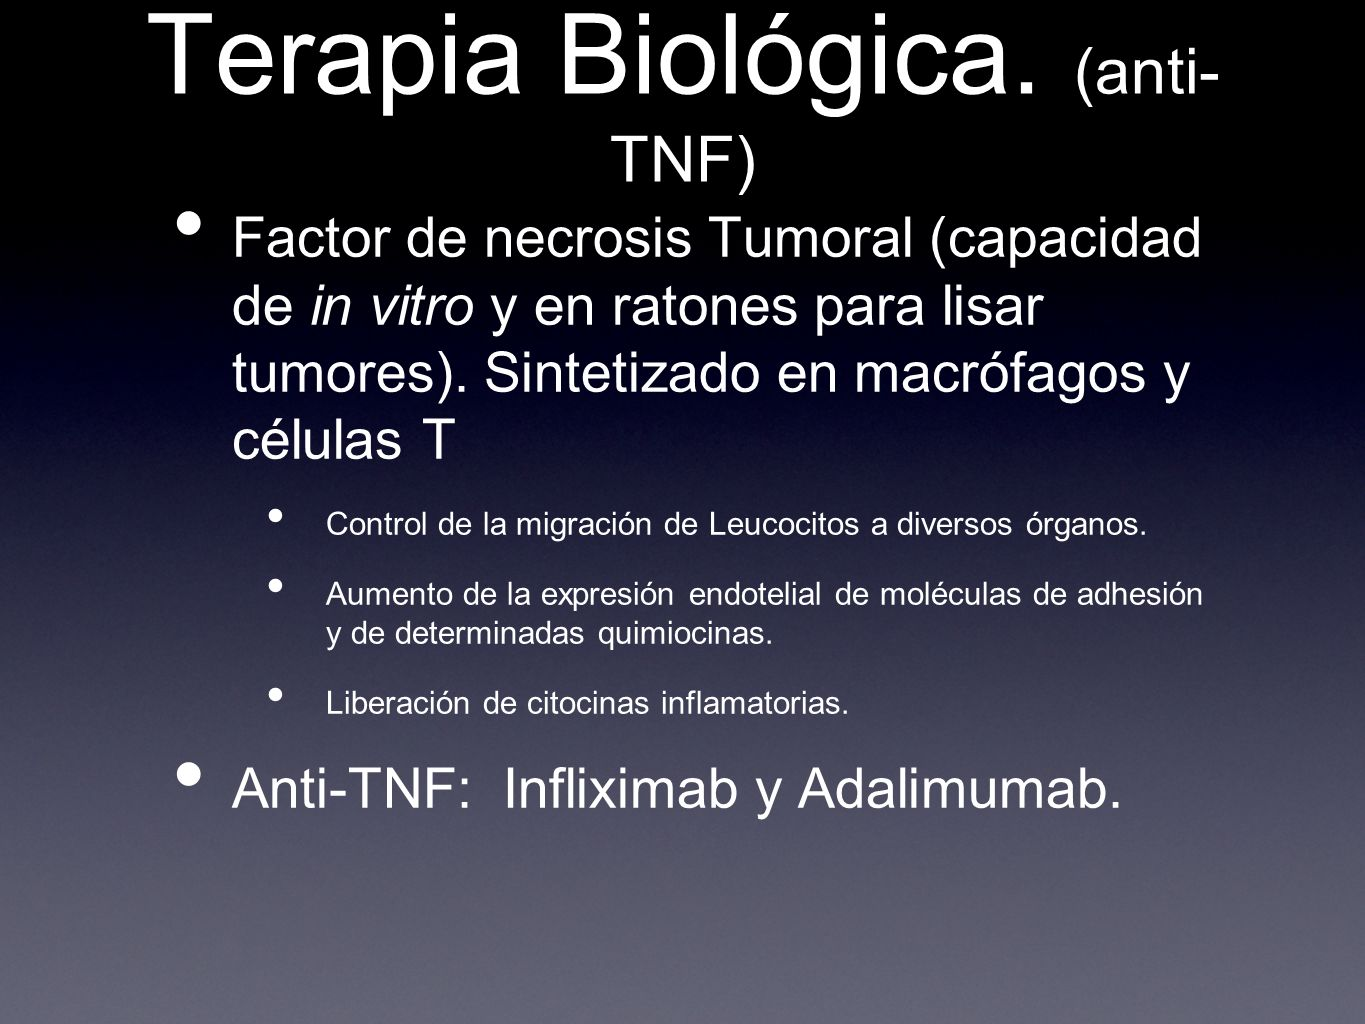 Terapia Biológica. (anti-TNF)